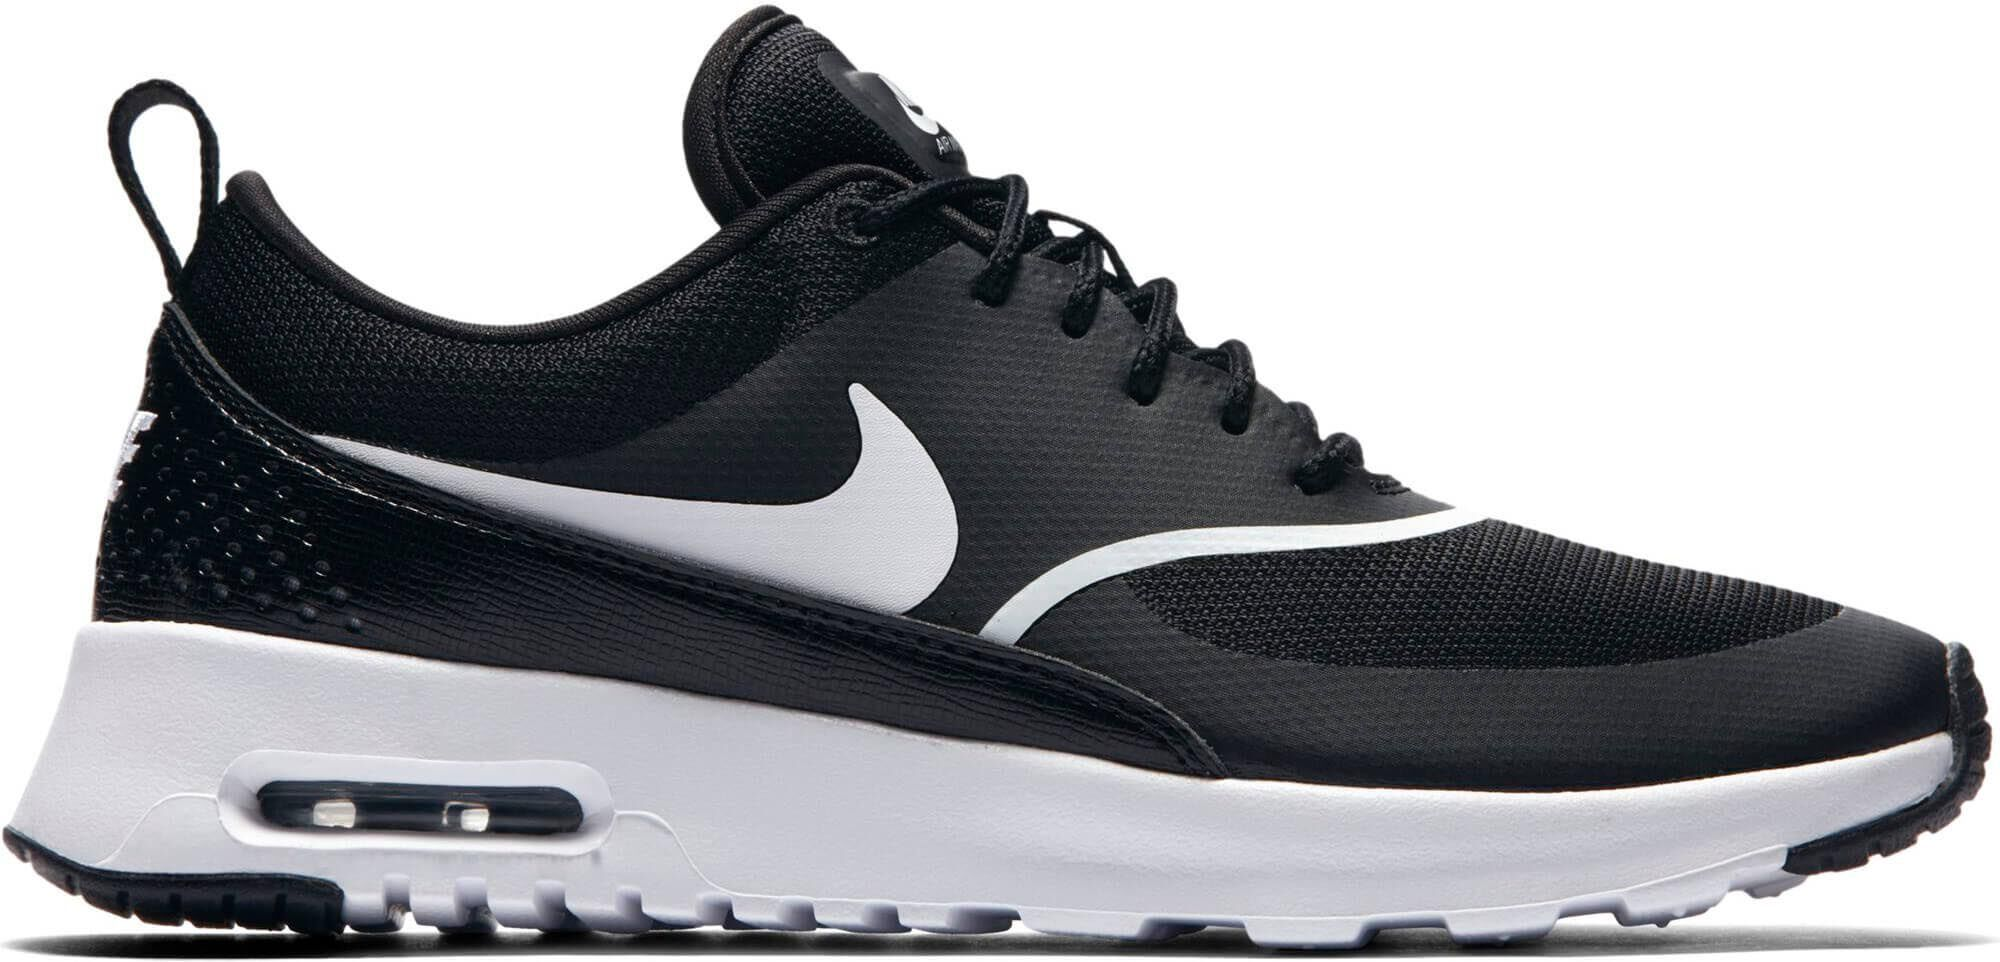 Køb Nike Air Max Command PRM Dame til Dame i Sort